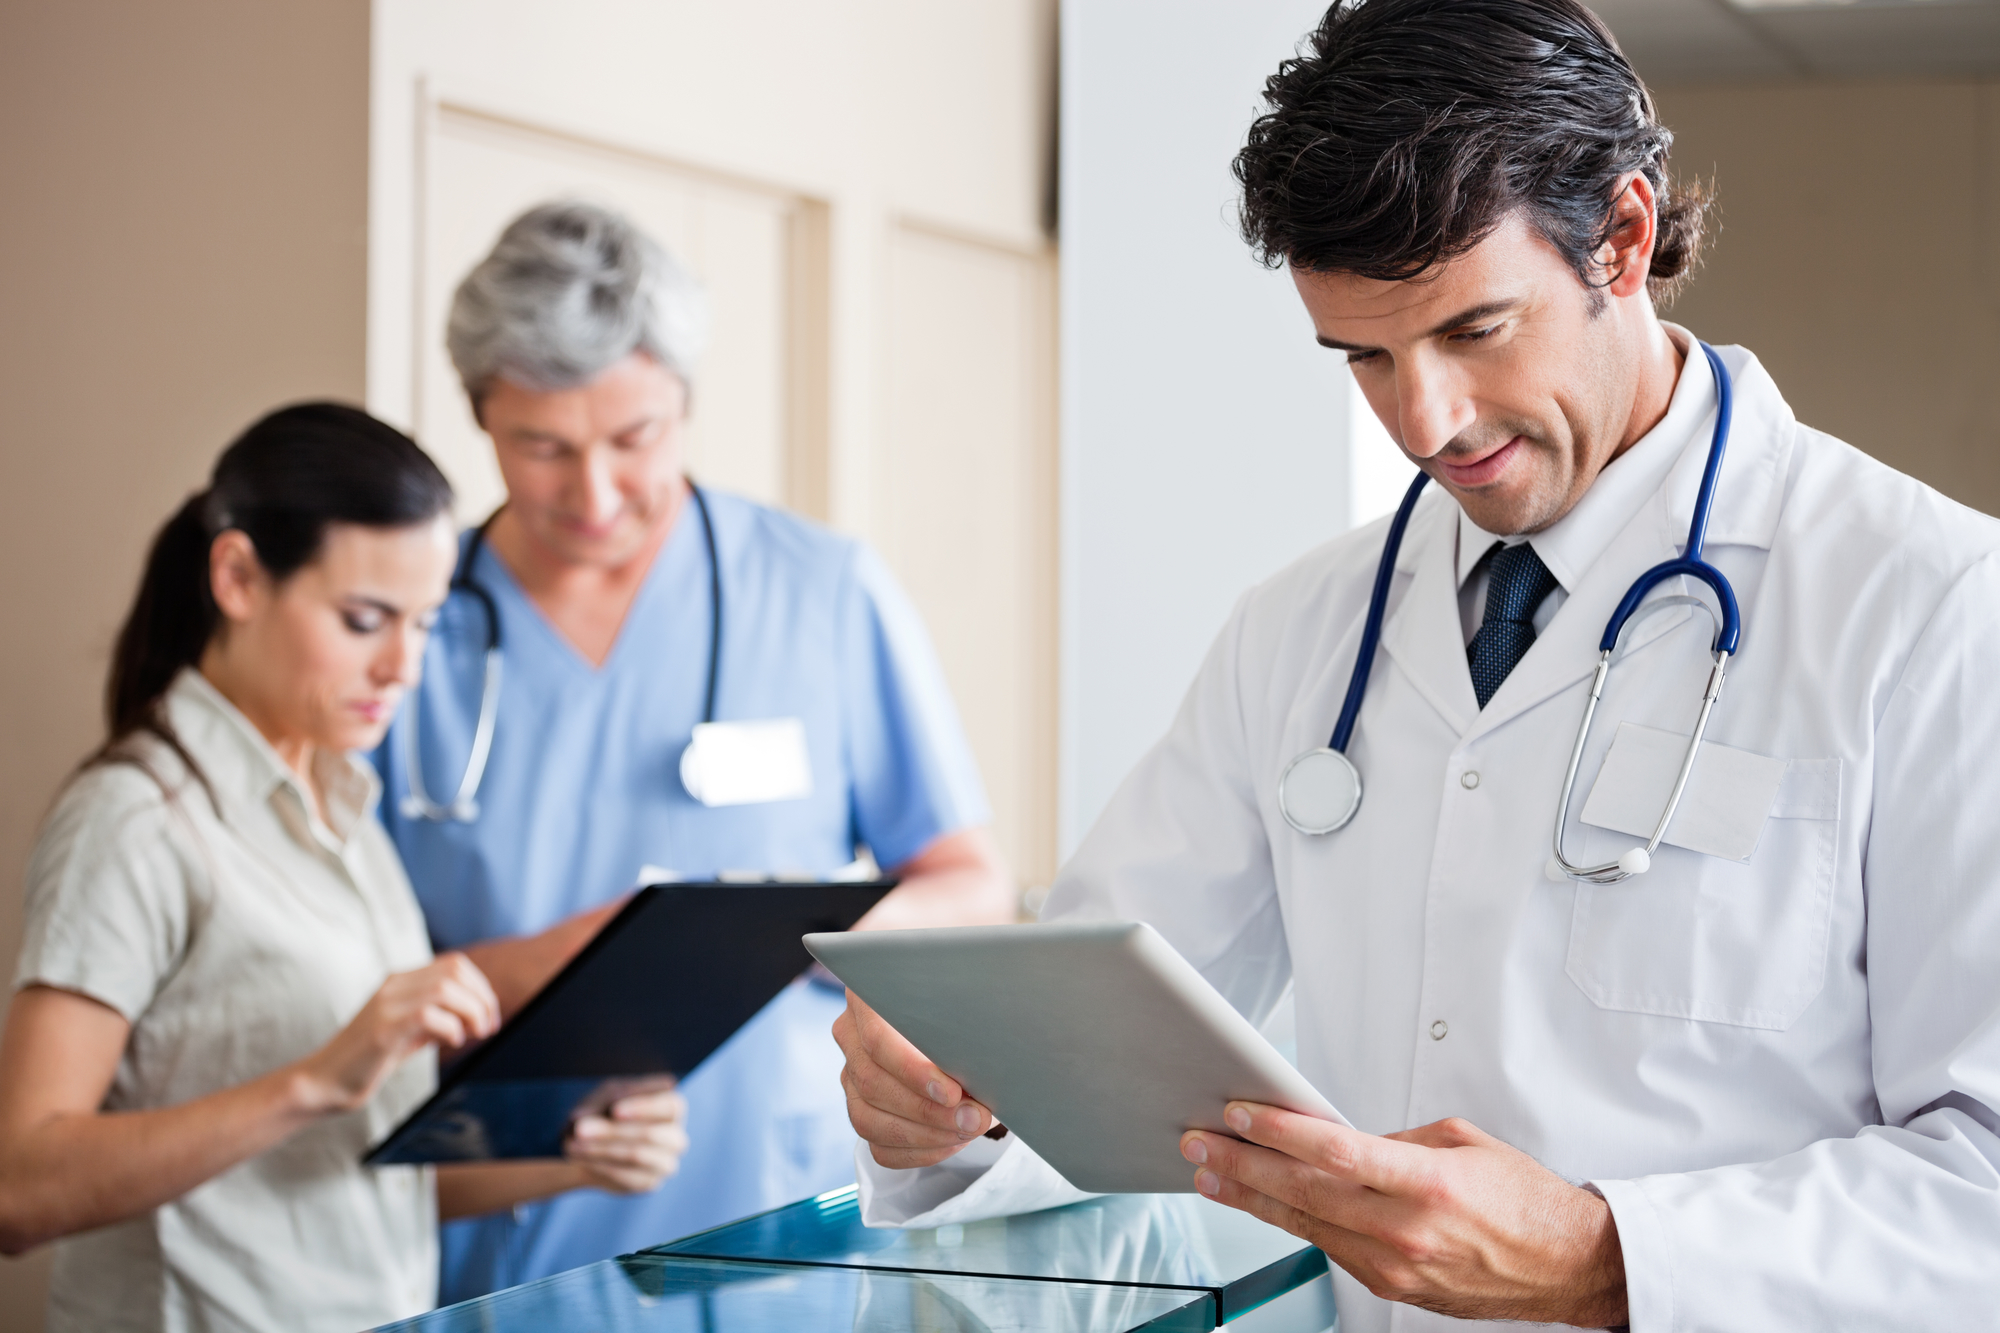 5 Steps to Expect During Your Visit to the Urologist - Gulf